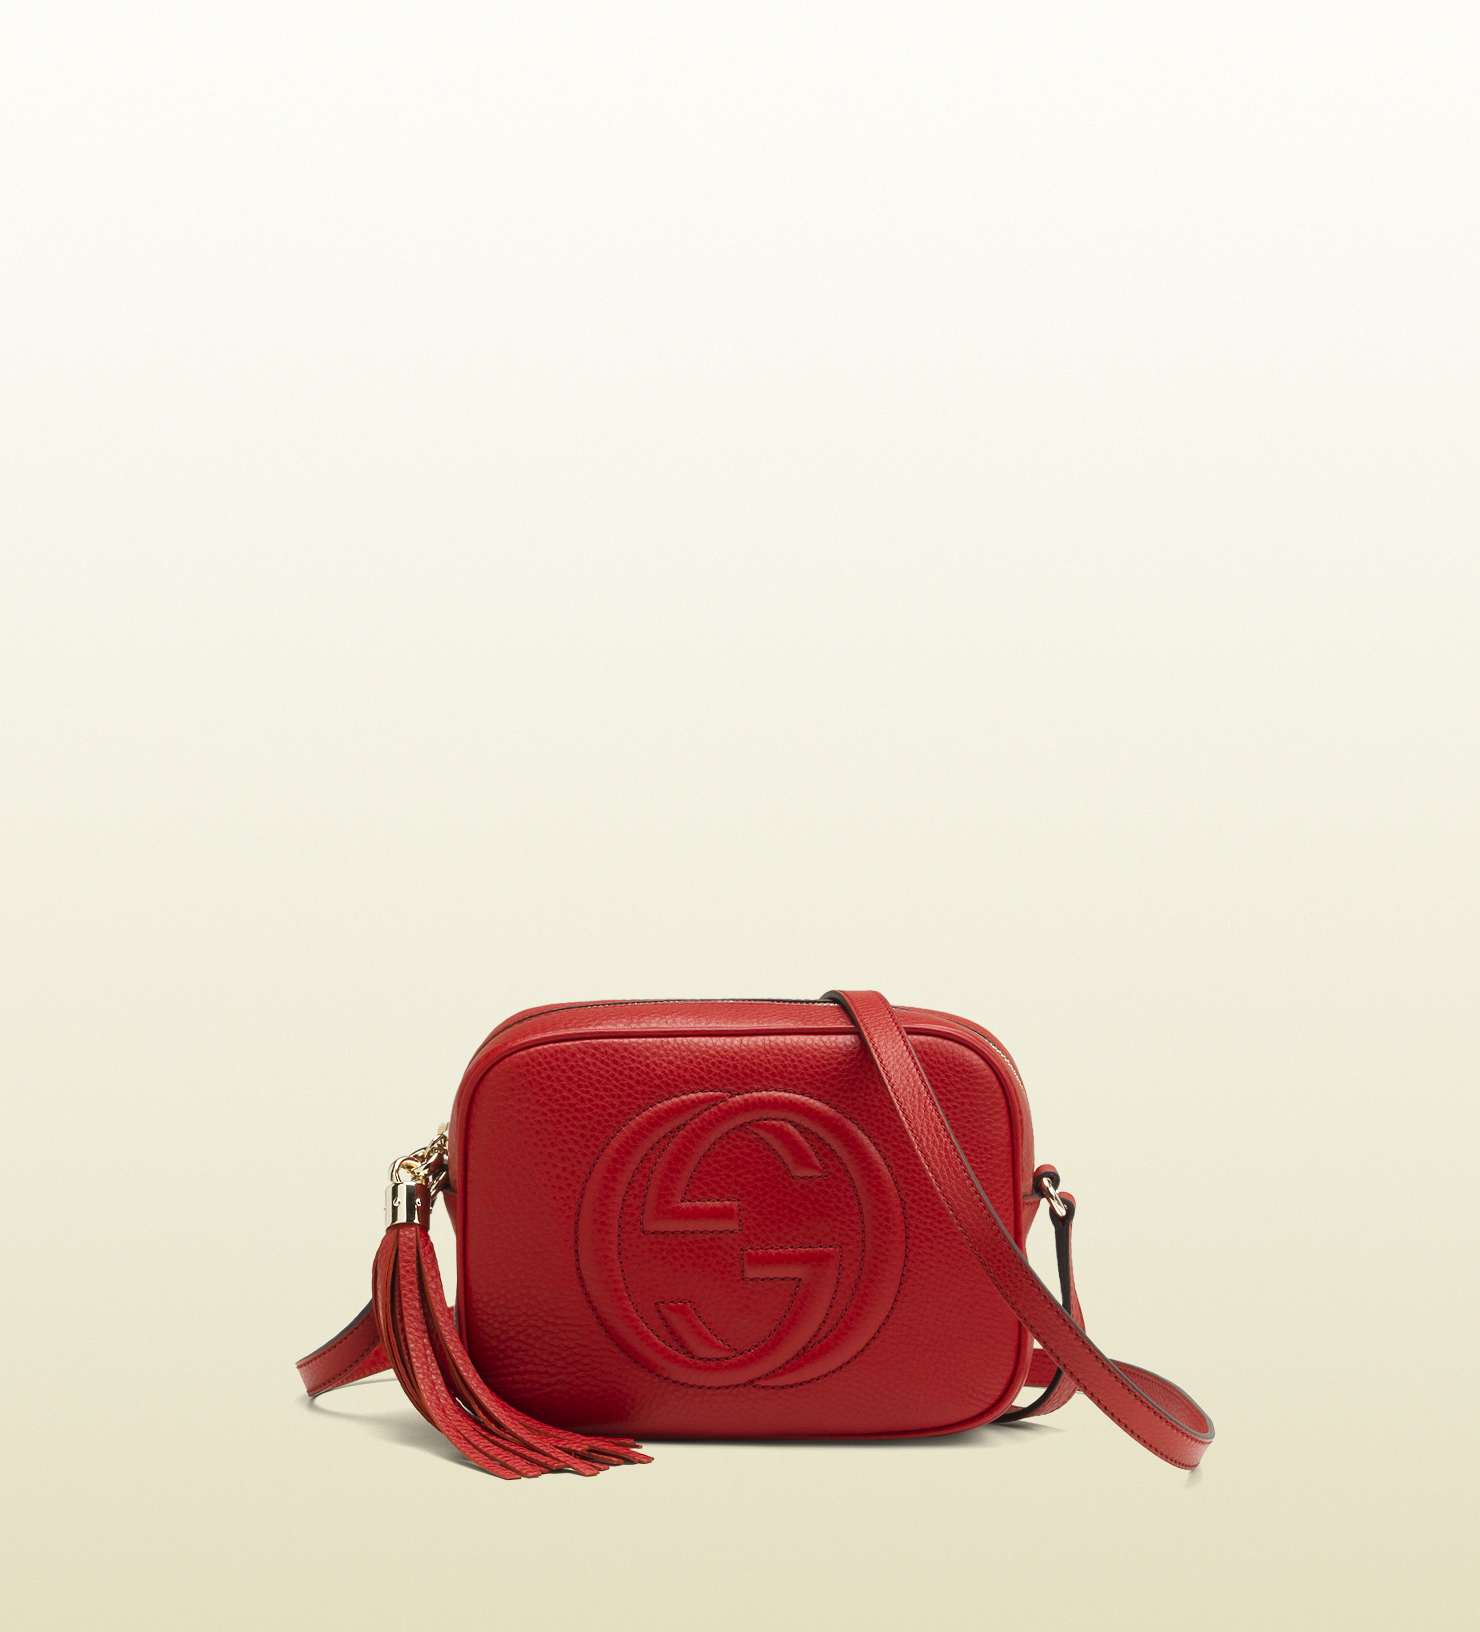 cc745b229711 Gucci Soho Leather Disco Bag in Red - Lyst